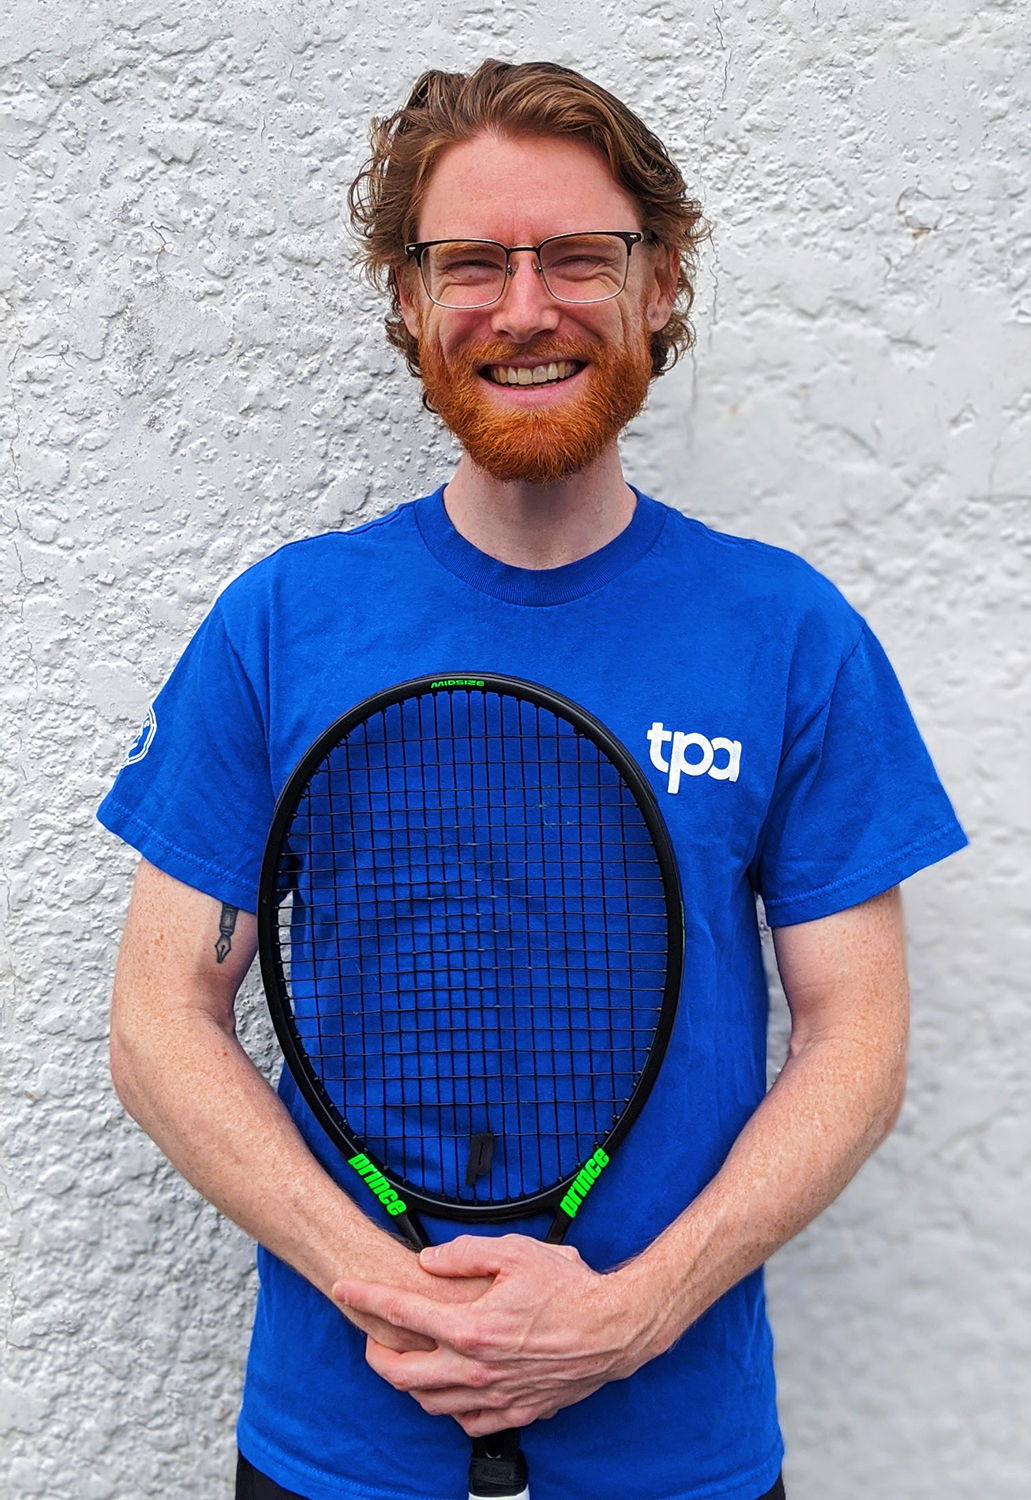 Photo of Dan, a tennis instructor in Victoria, BC, holding a tennis racquet